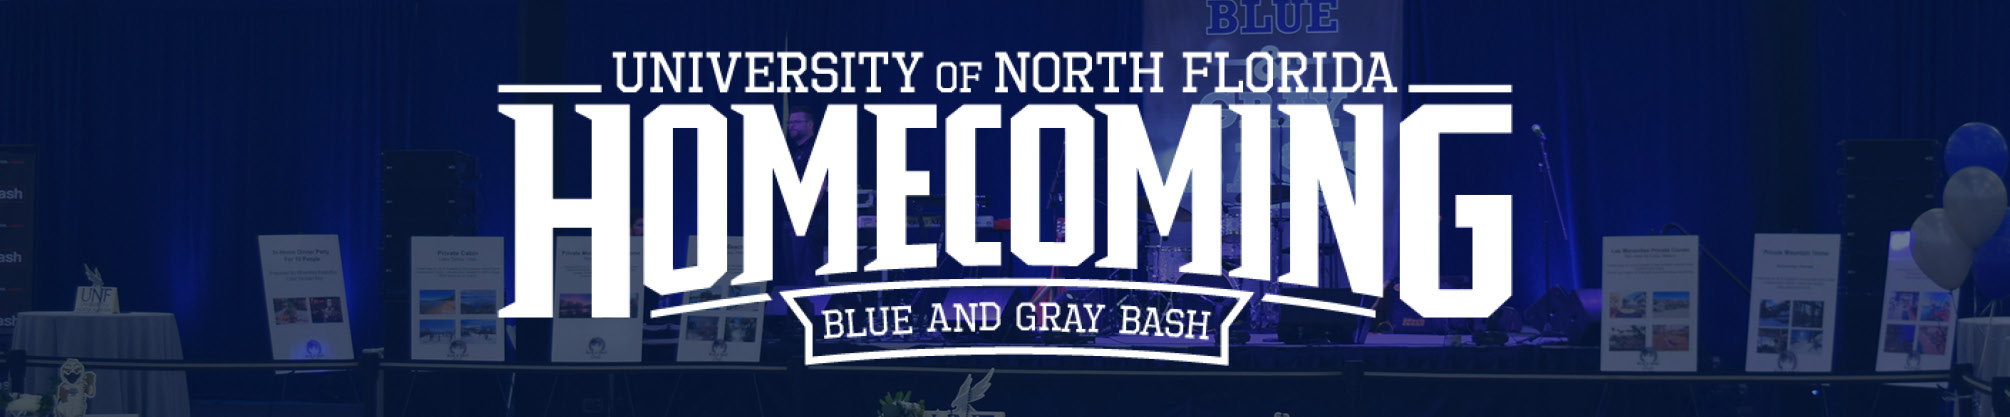 University of North Florida homecoming - blue and gray bash - on a blue background